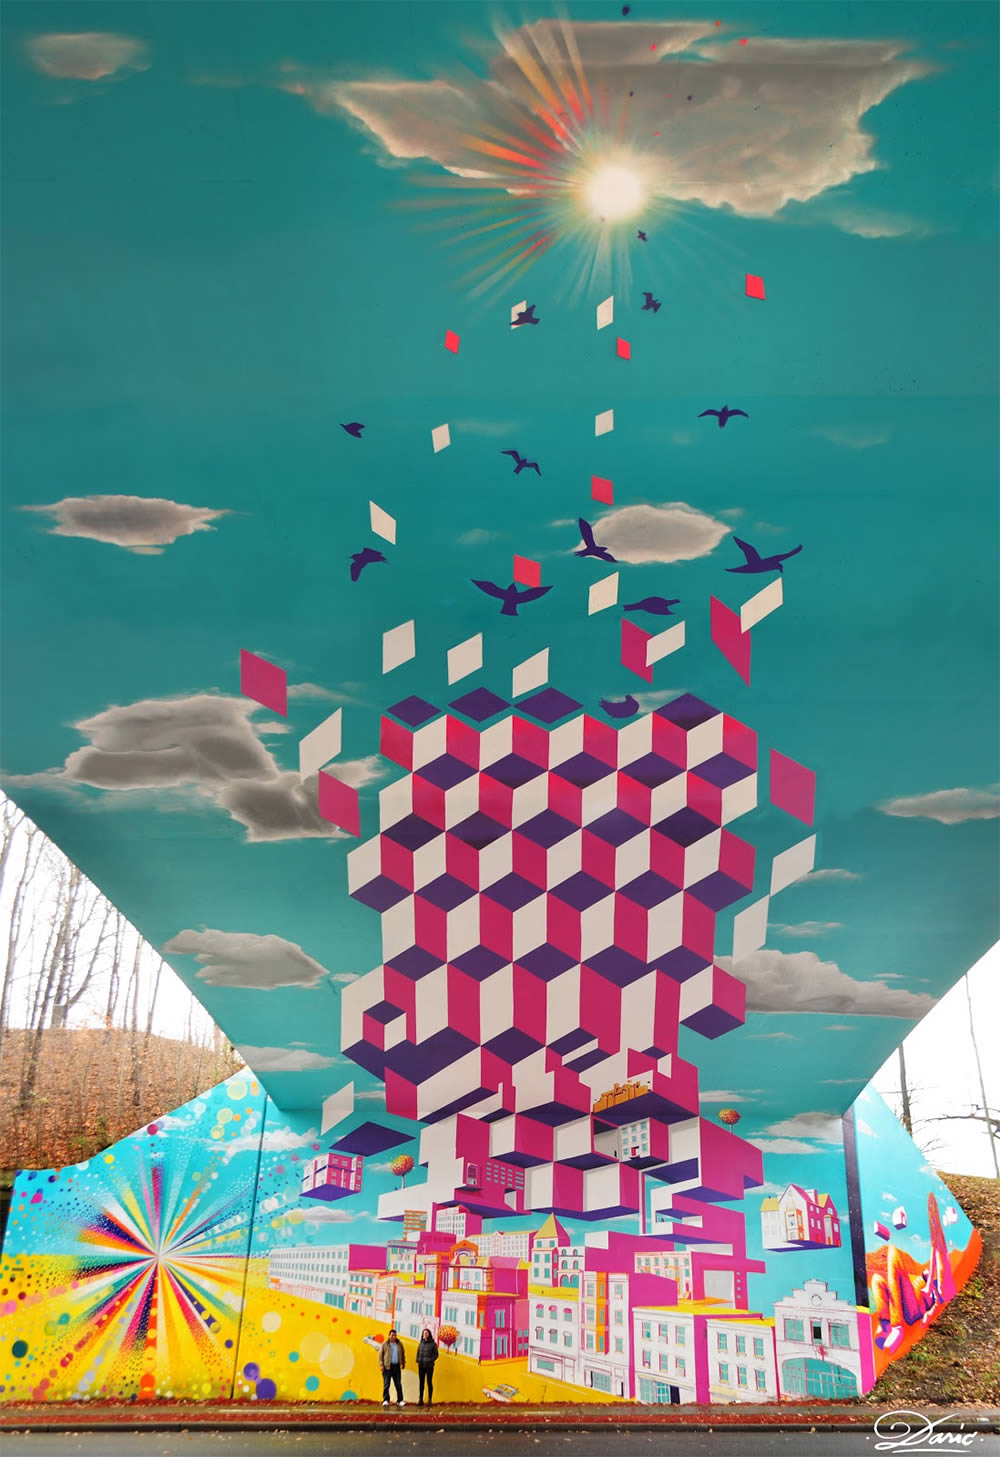 optical illusion mural by dasic